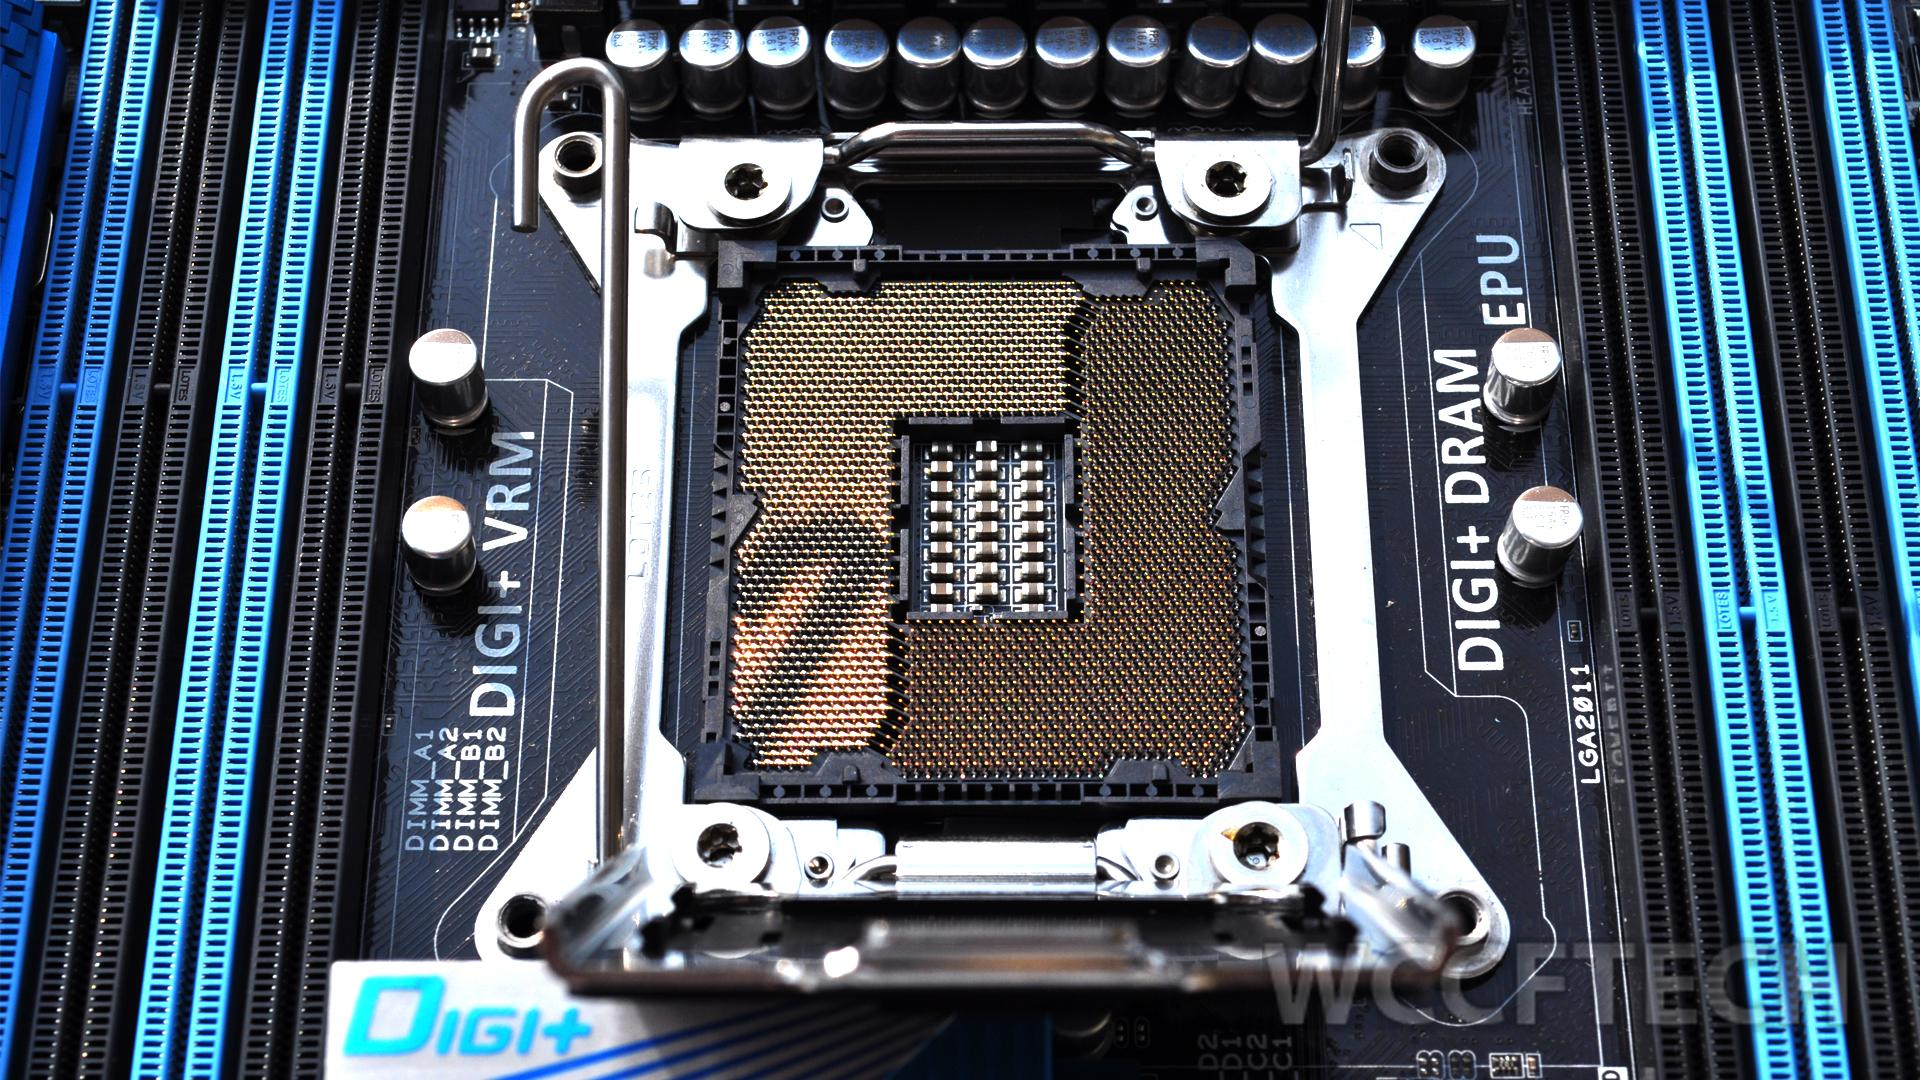 Asus P9x79pro Motherboard Review The Perfect Match